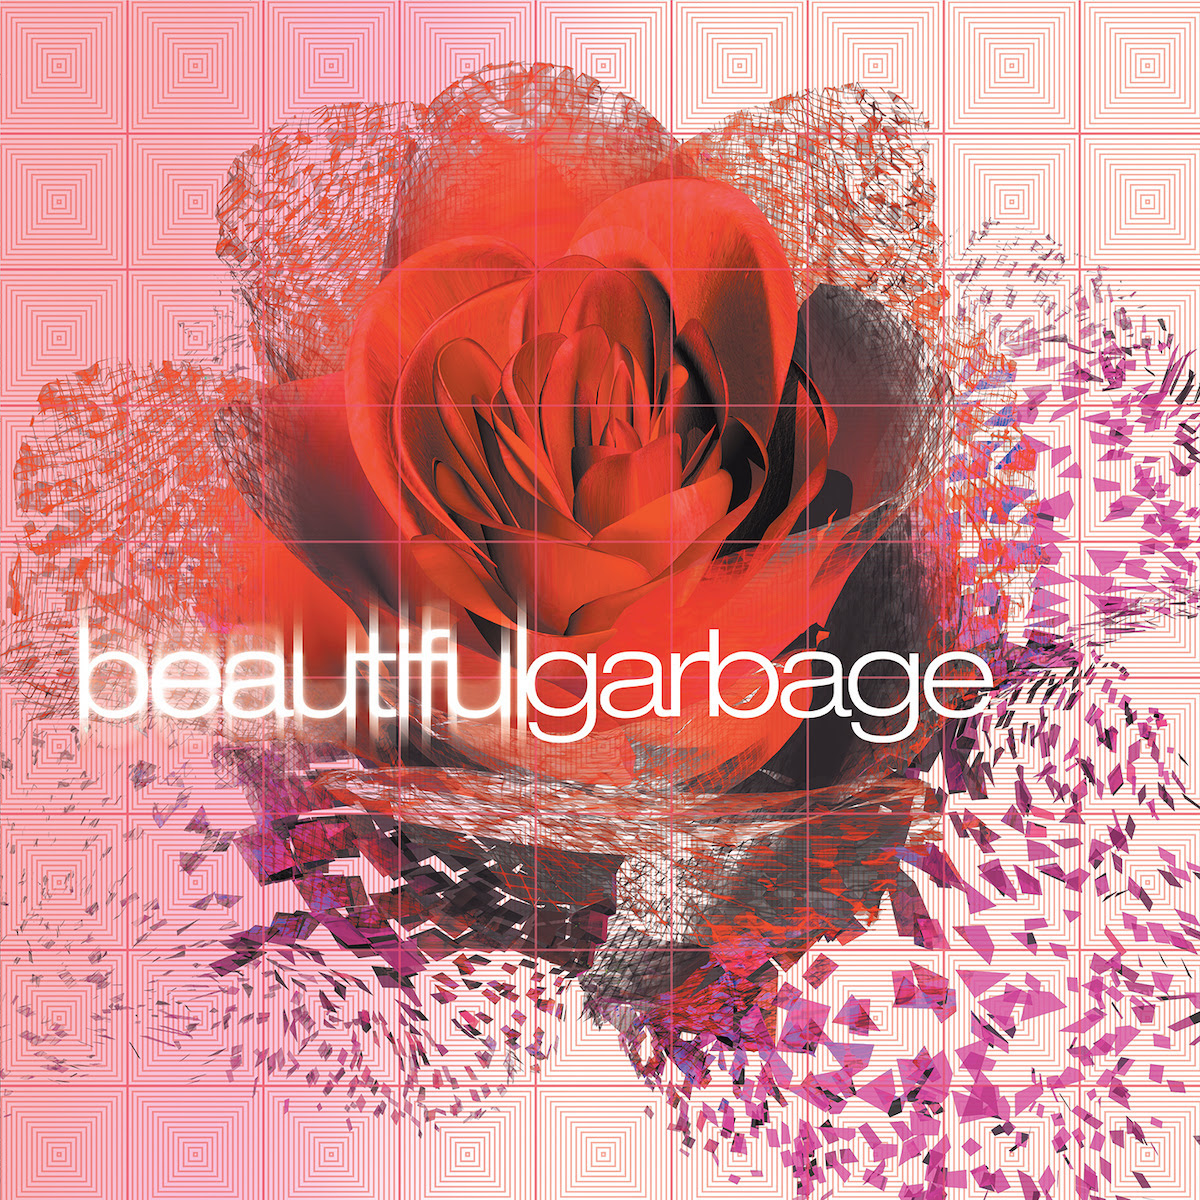 """Garbage Share """"Androgyny"""" Alternate Version From beautifulgarbage 20th Anniversary Reissue"""